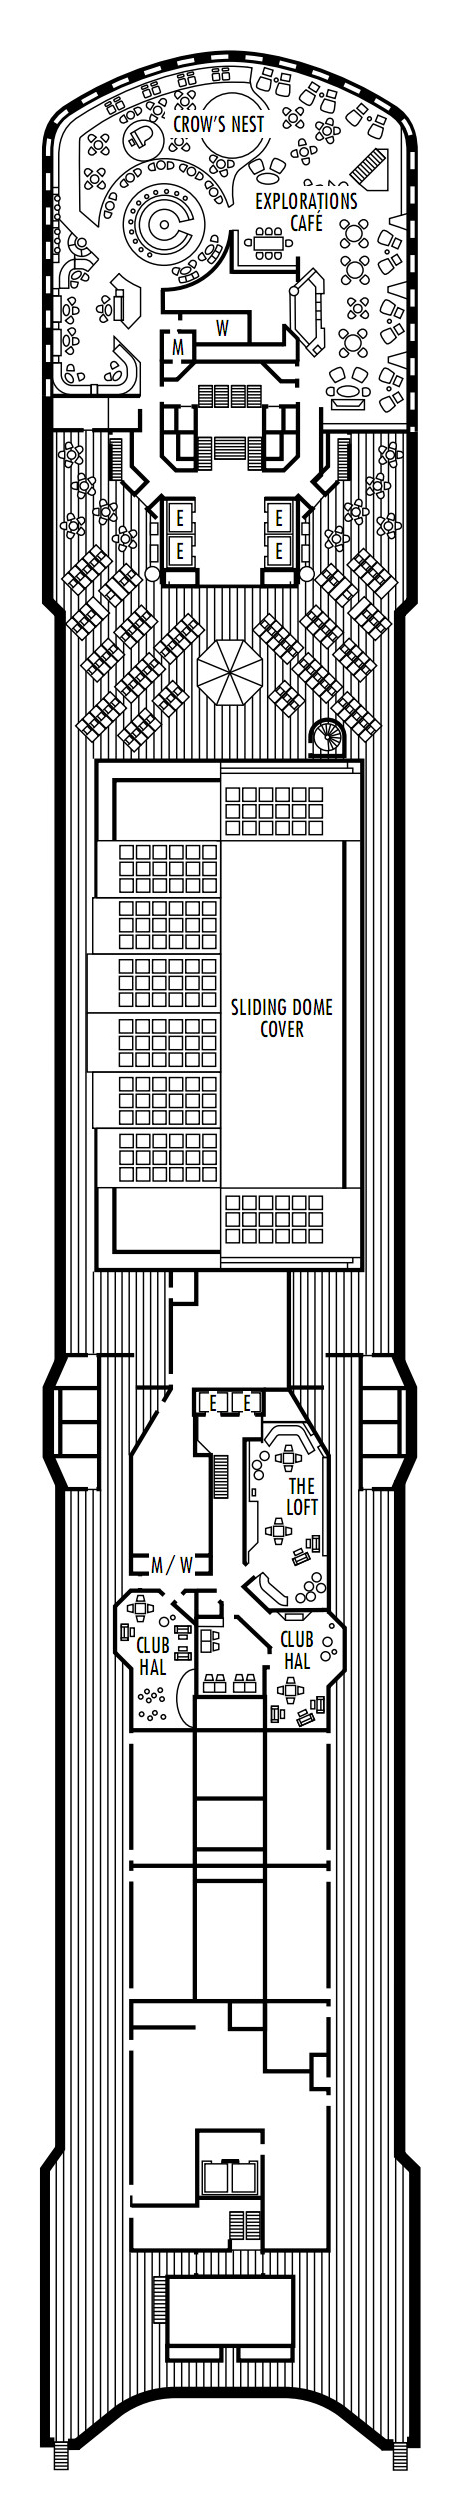 Westerdam Deck 10 - Observation Deck   layout